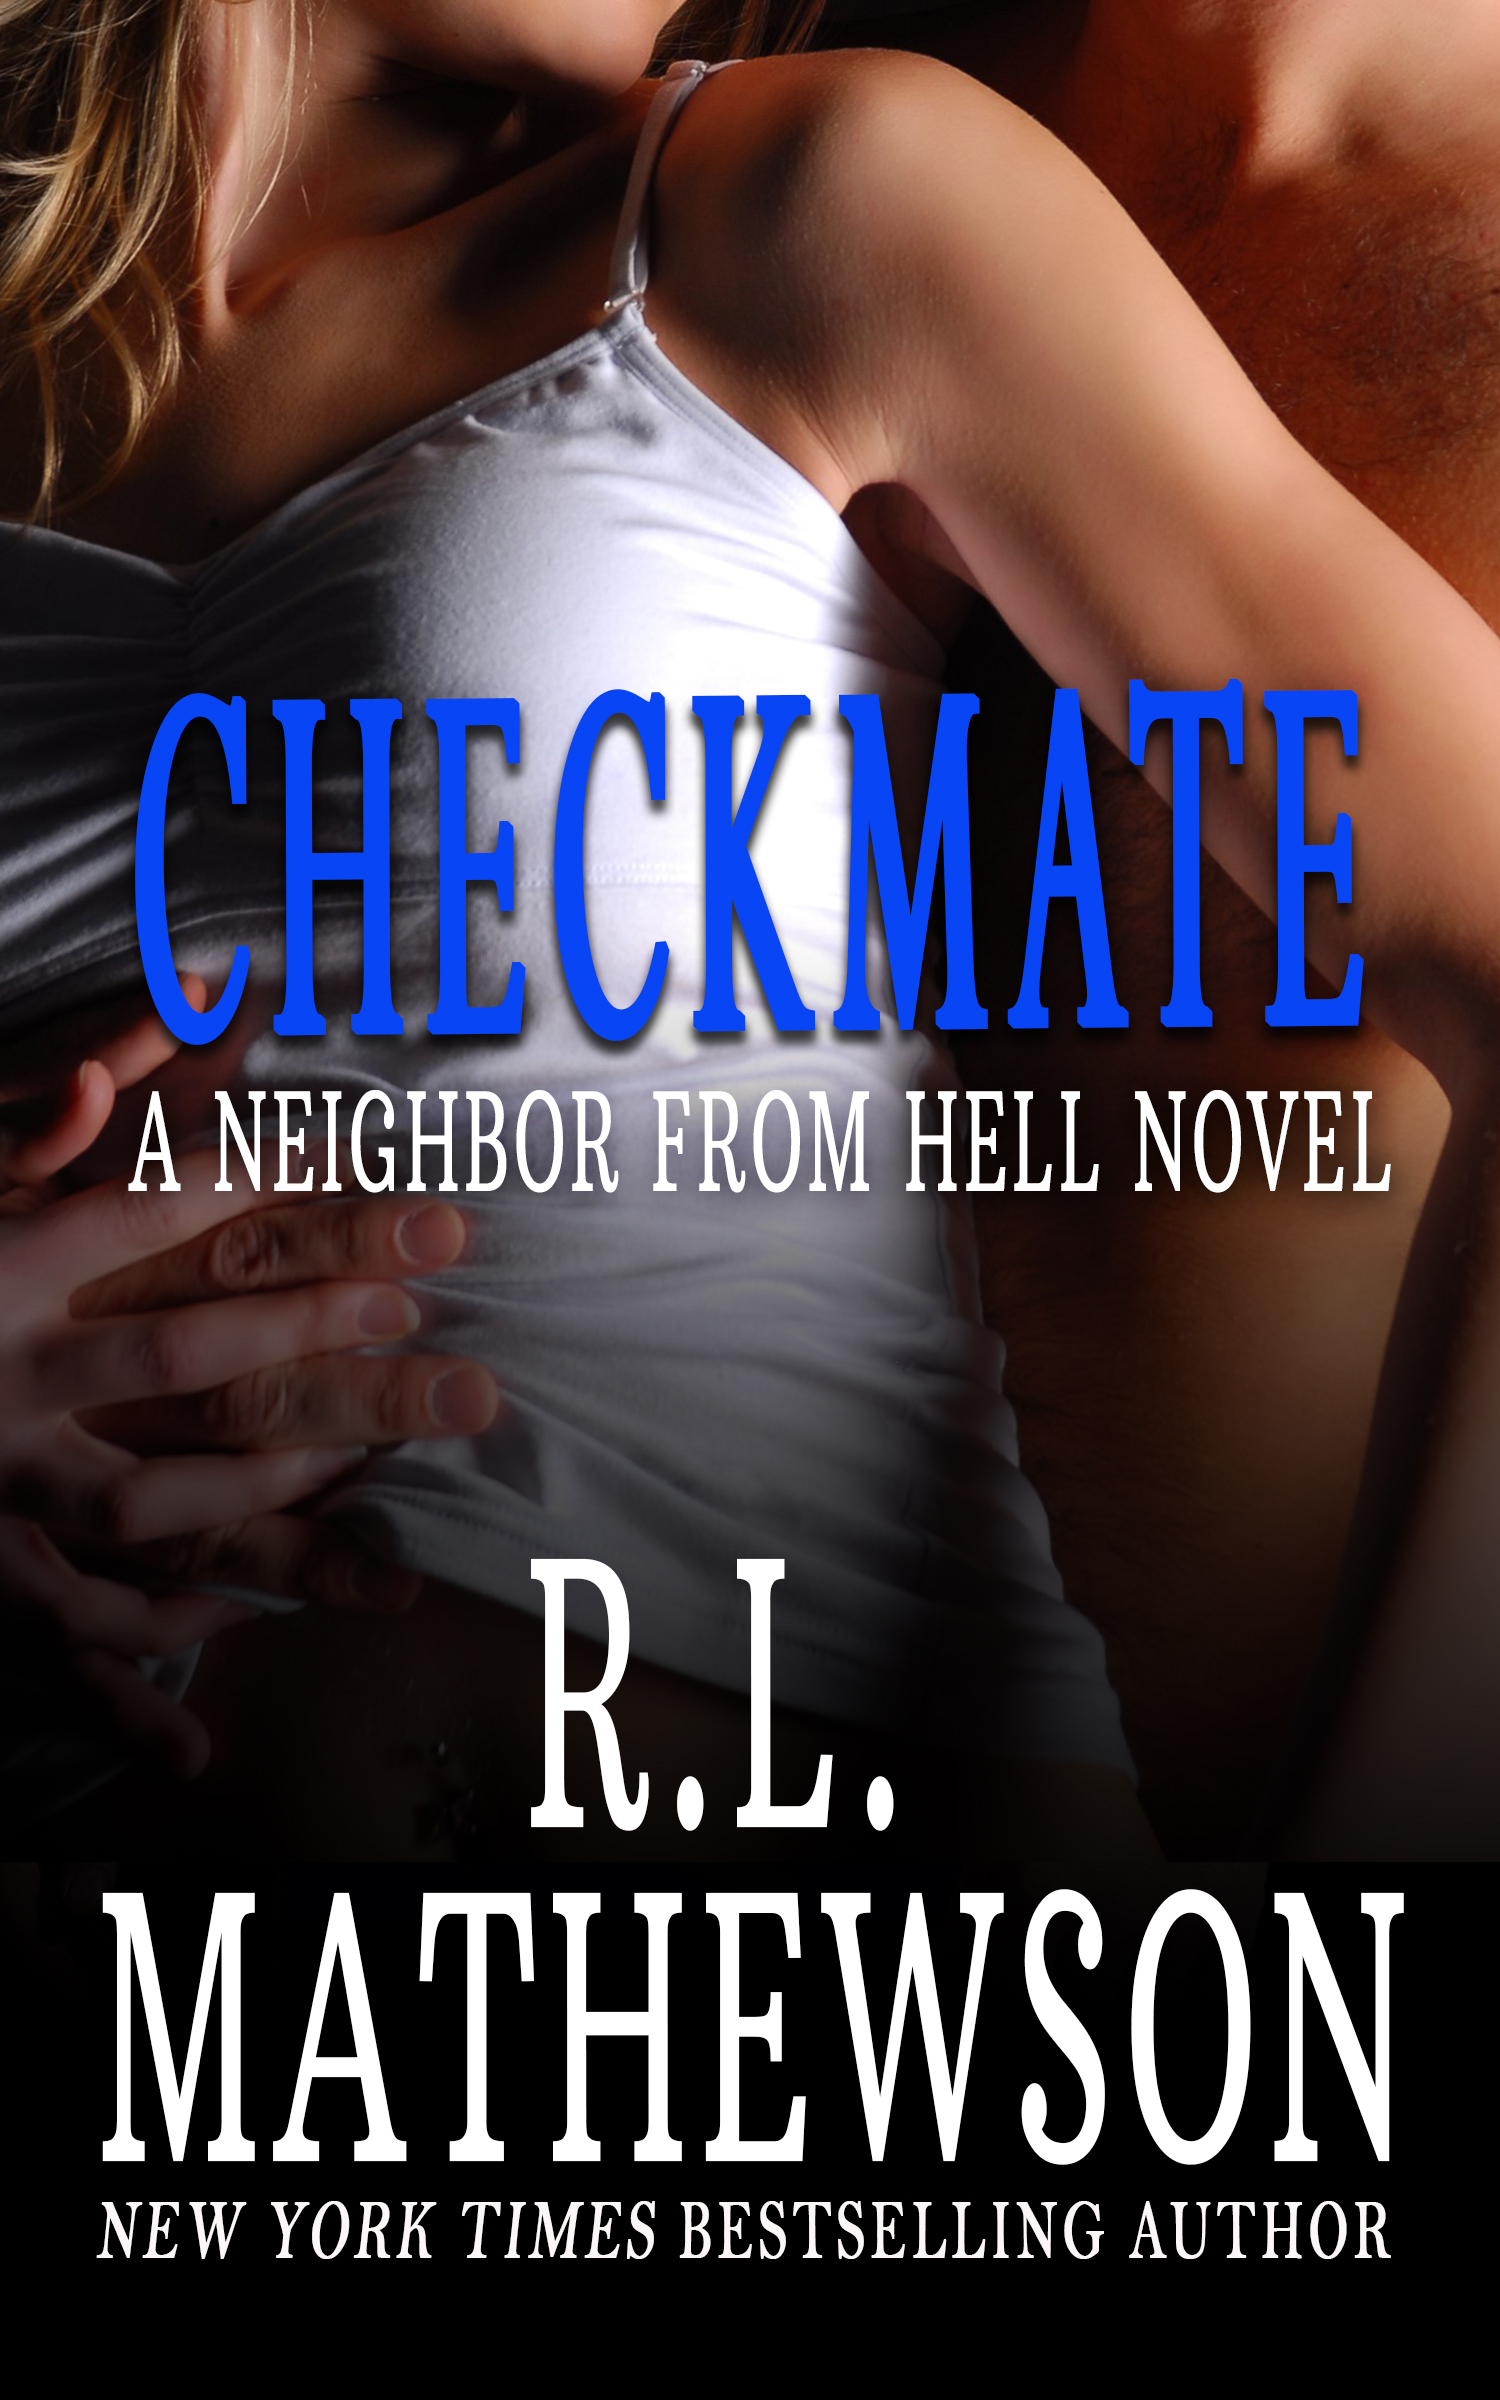 Perfection By R.l.mathewson Ebook Download